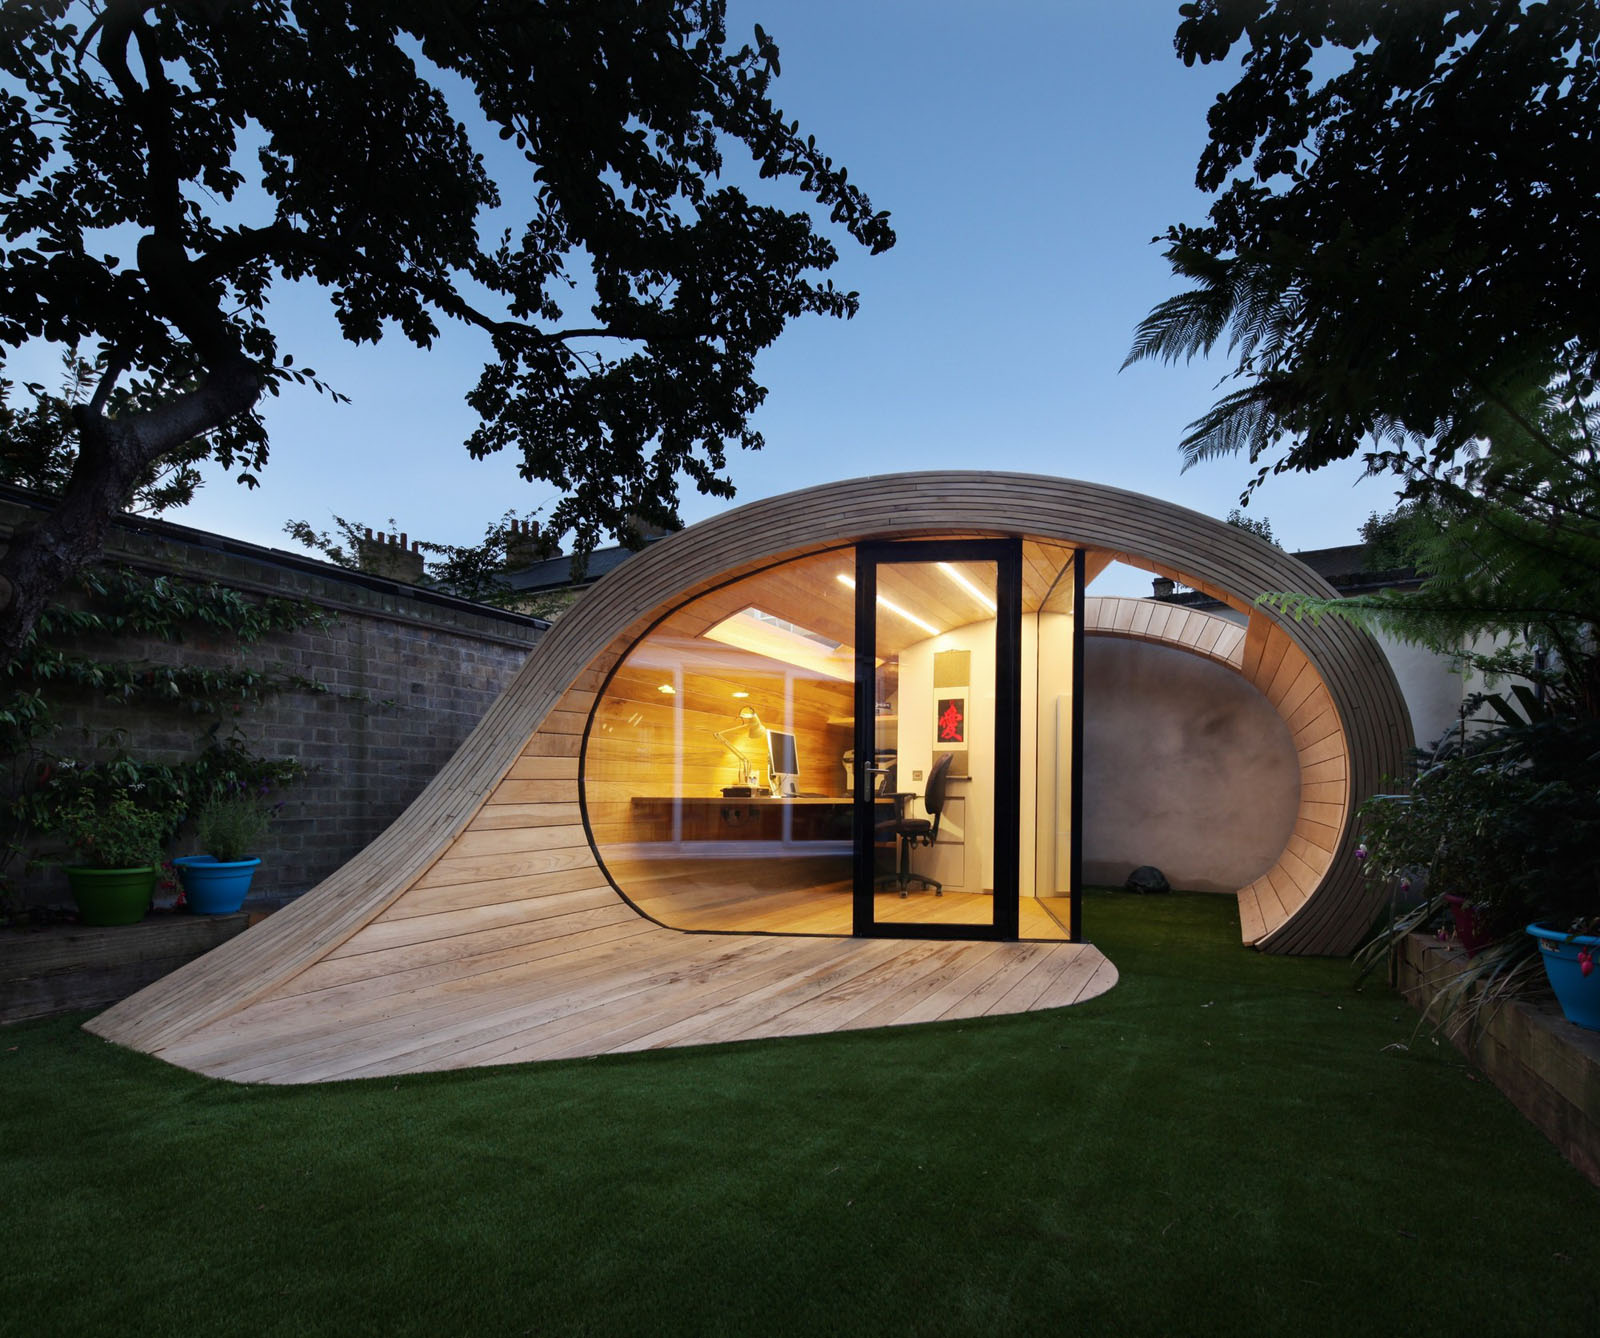 Captivating This Unique Timber Elliptical Shell Is A Lightweight U201cShofficeu201d (shed +  Office) Located In The Backyard Of A 1950u0027s Terraced House In St Johnu0027s  Wood, ...